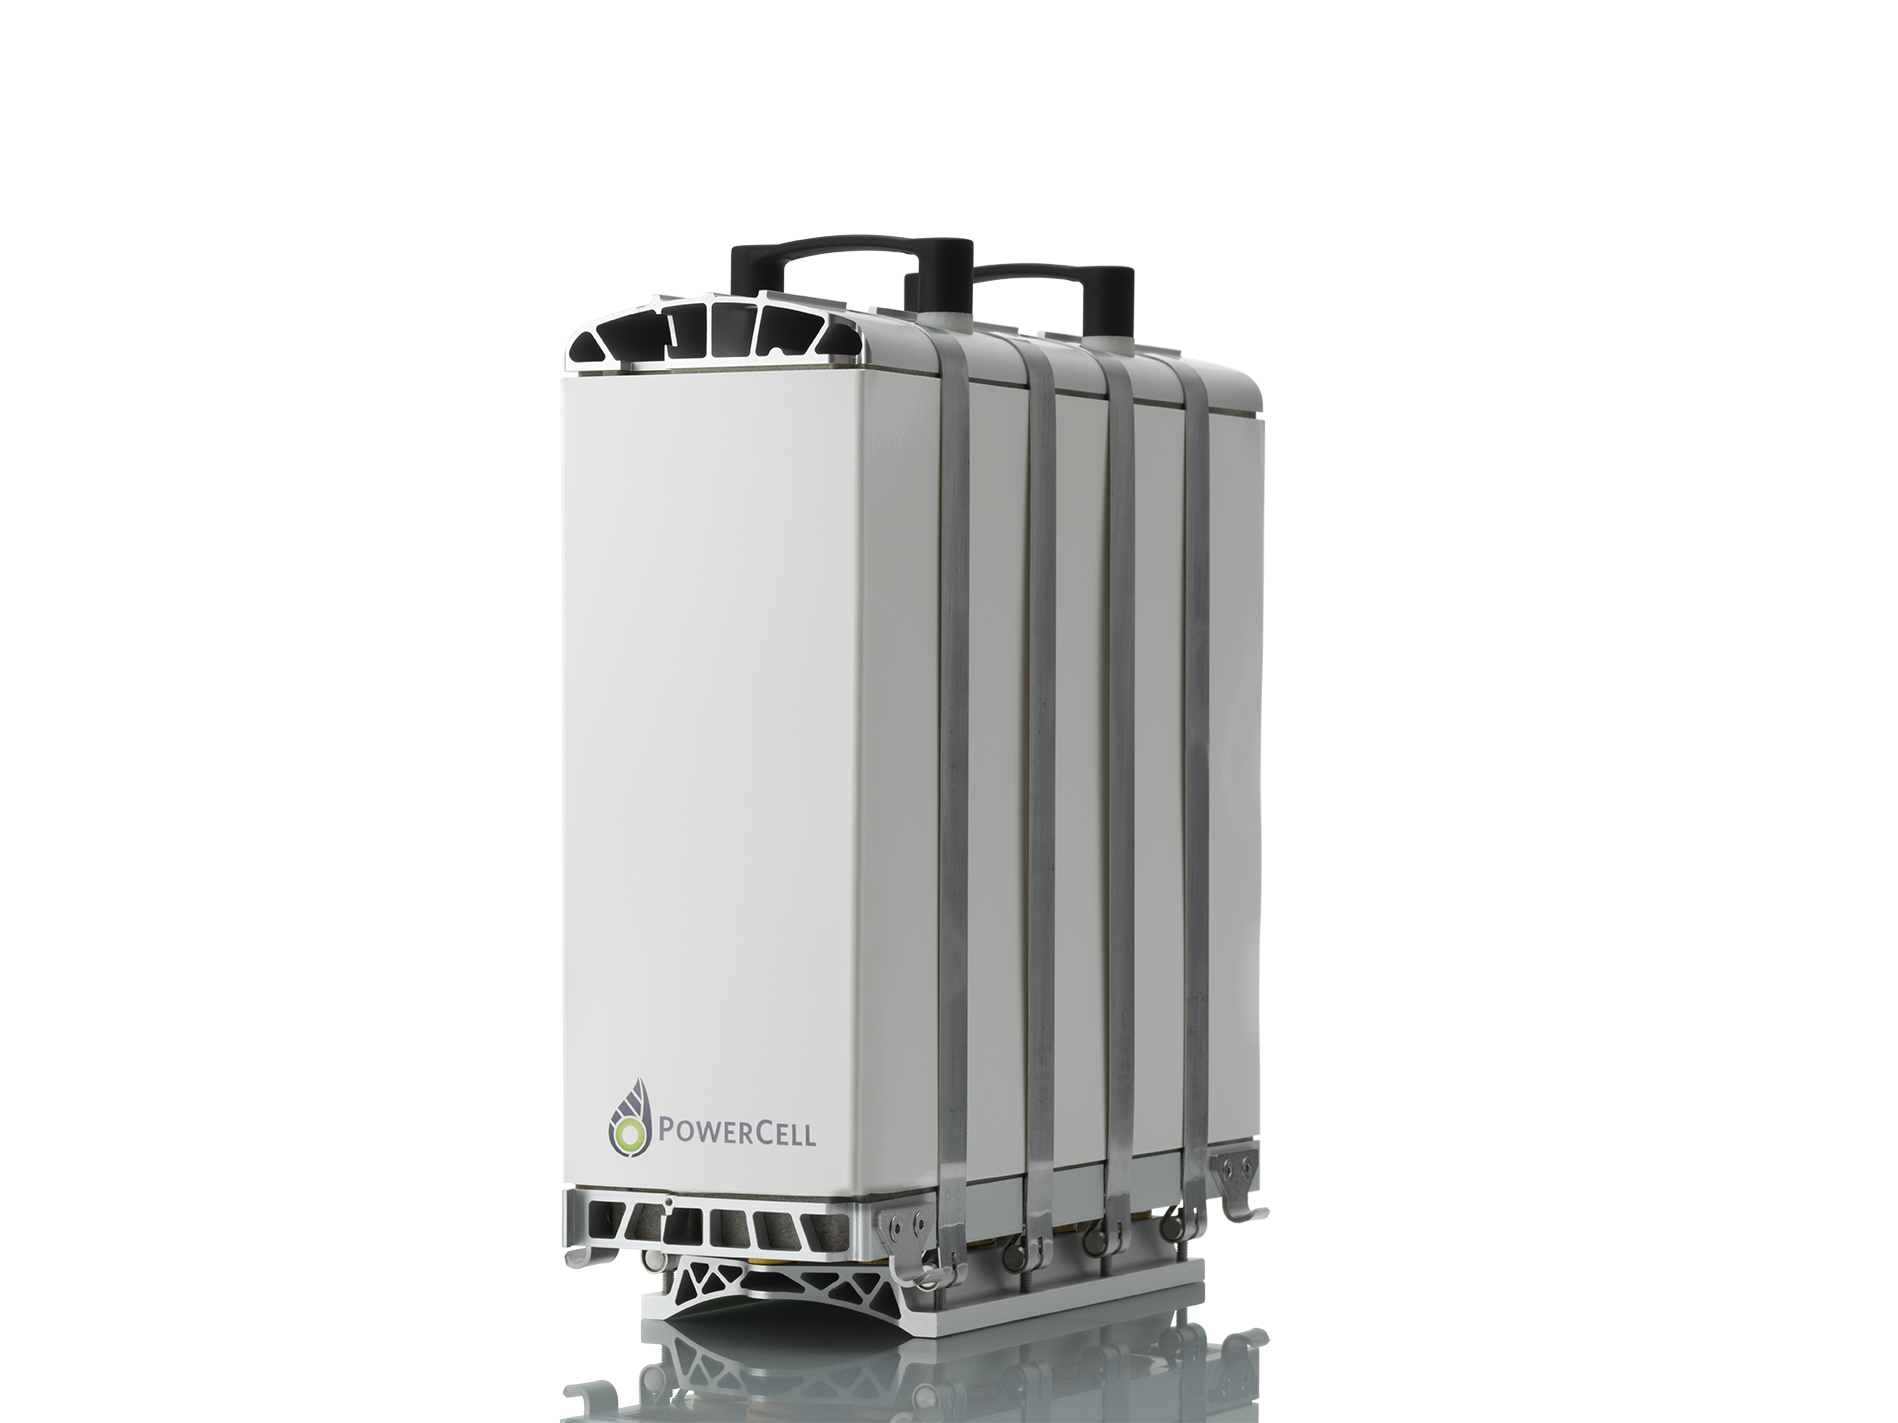 Bosch-plans-for-'large-scale'-fuel-cell-output